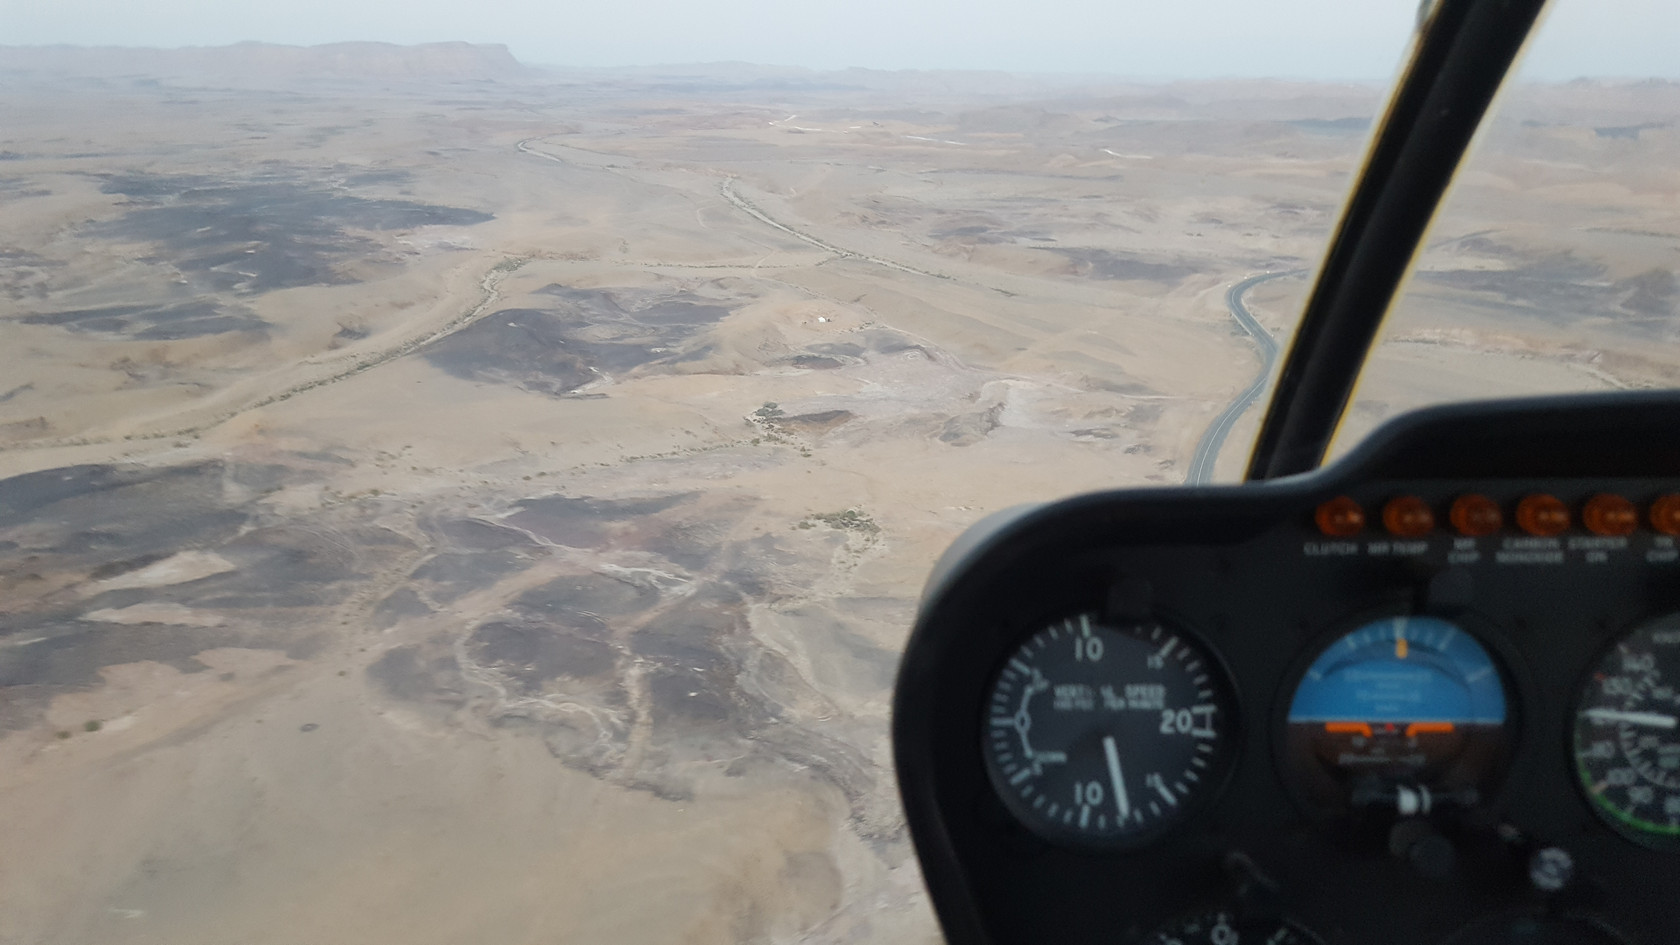 Ramon Crater helicopter tours and helicopter sightseeing in israel